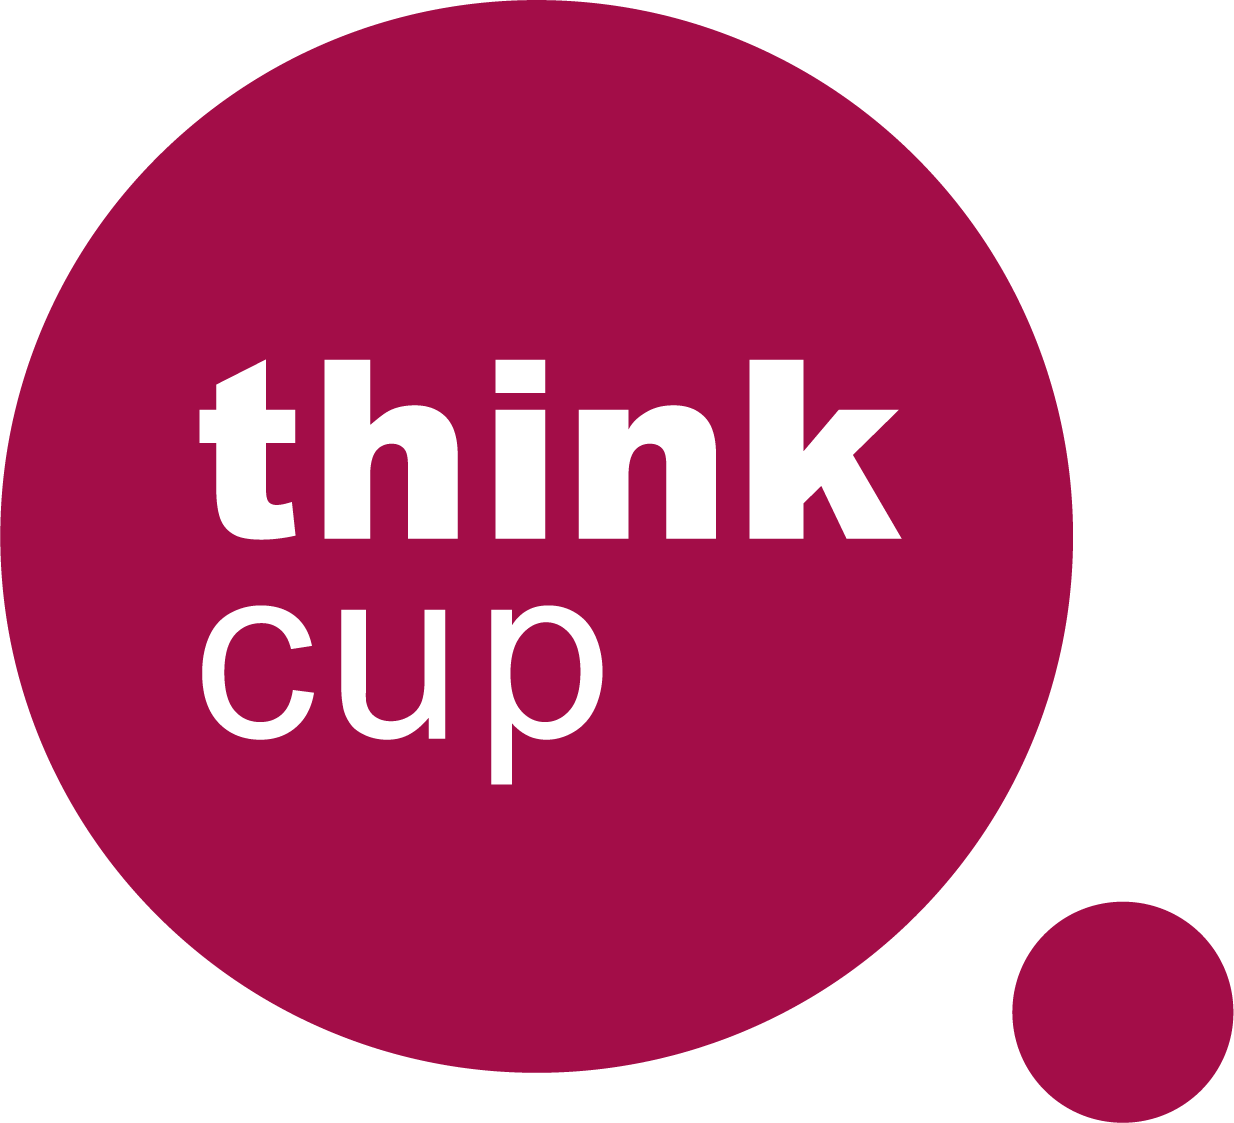 Think Cups